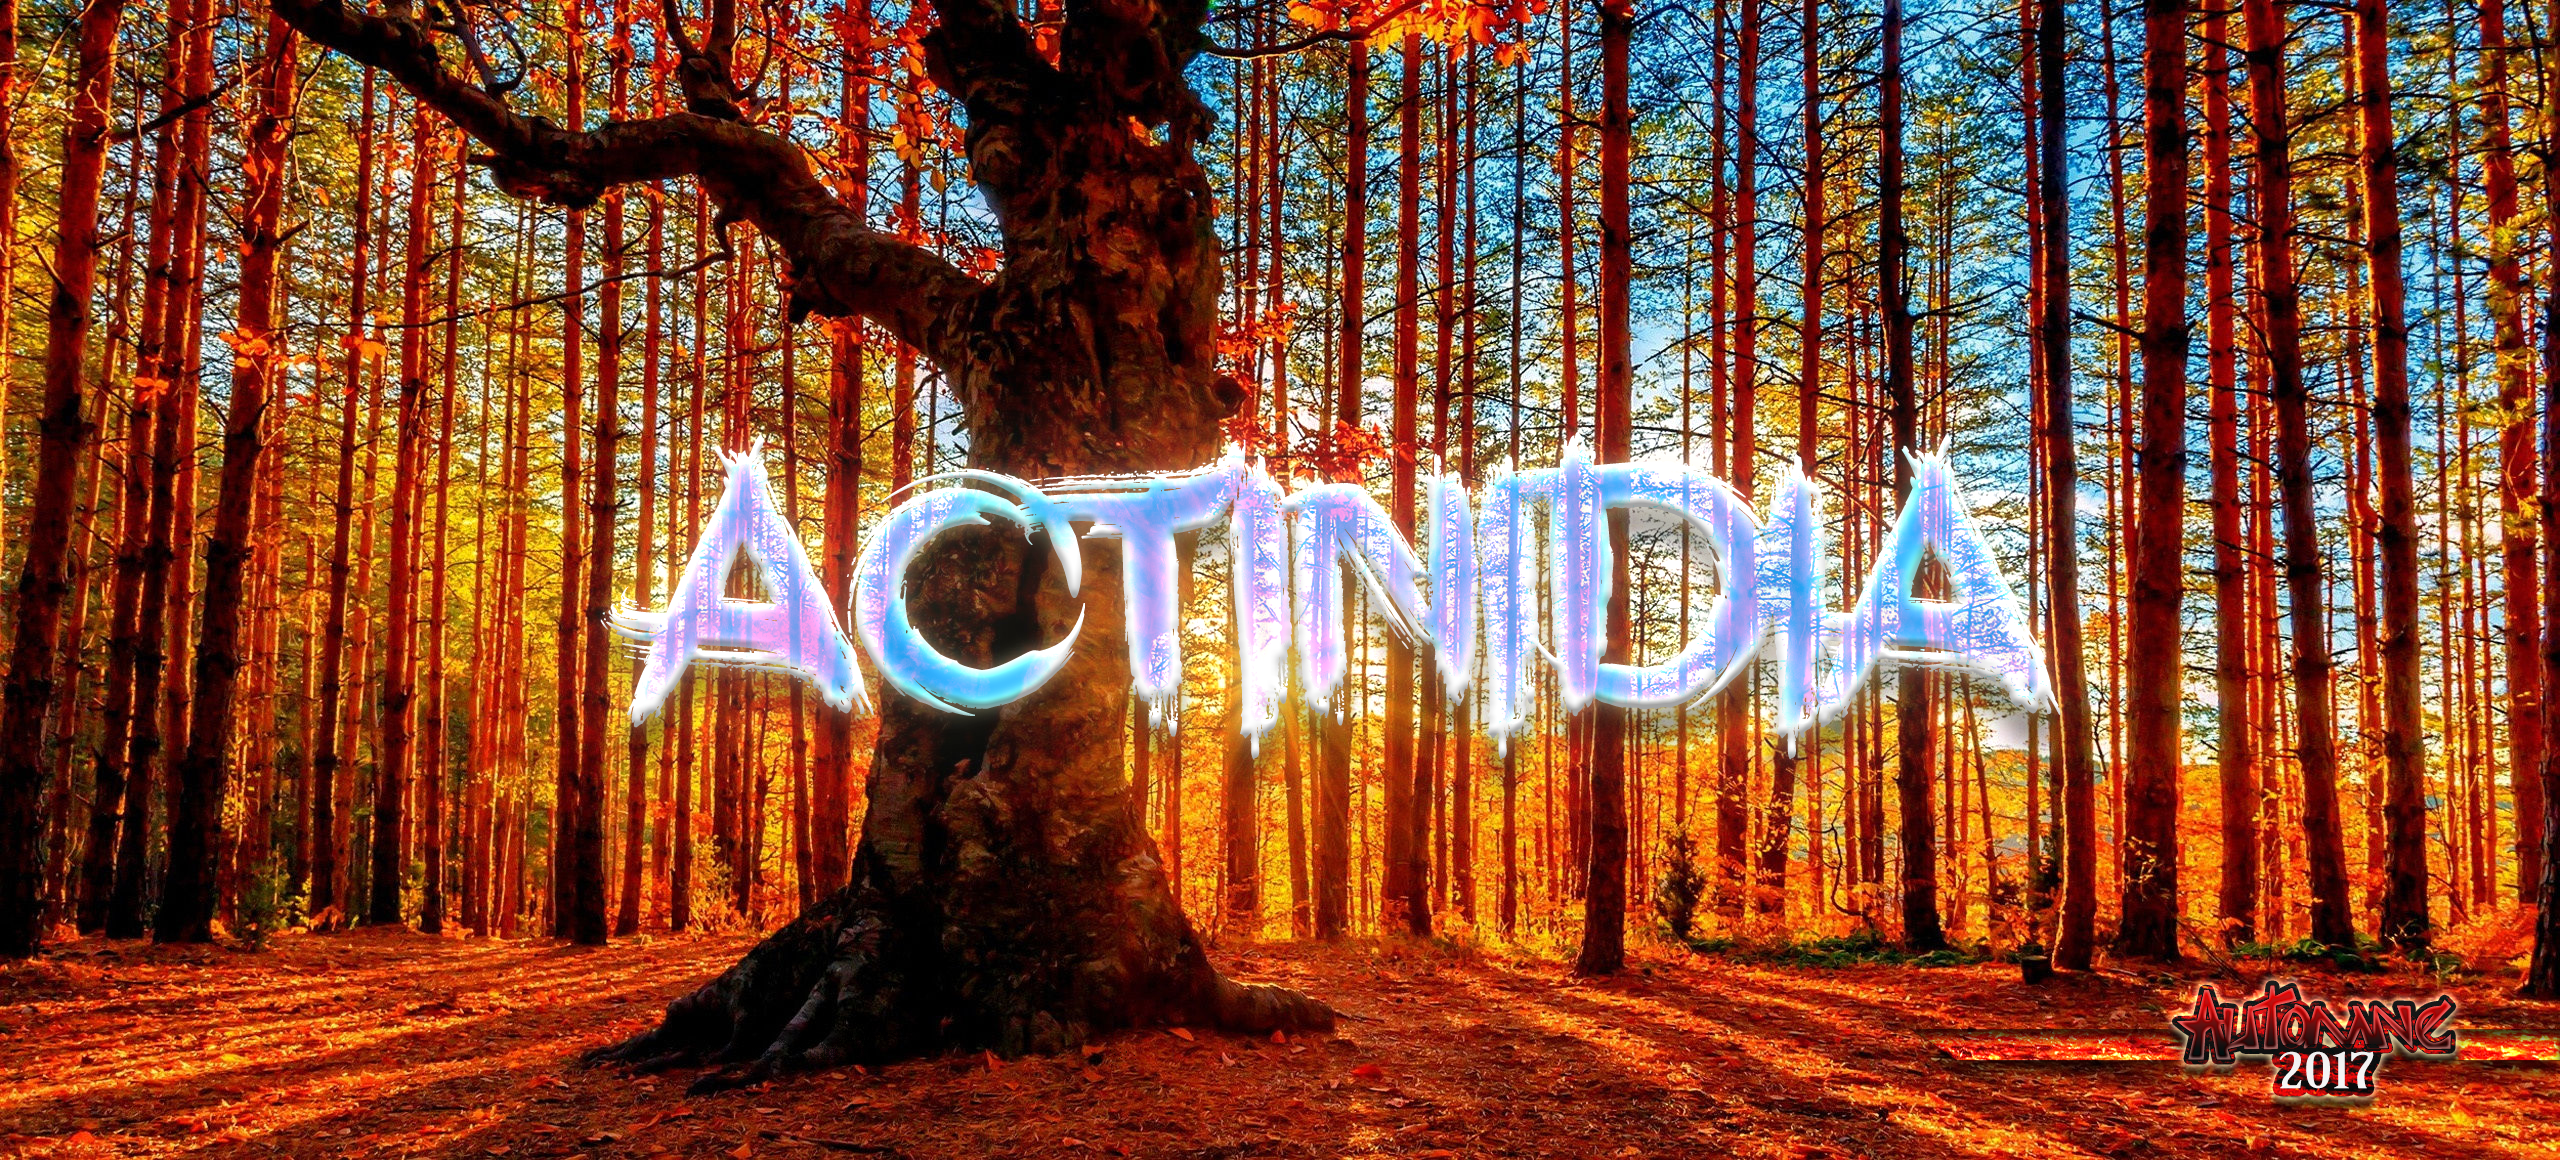 1505667487-actinidia.png